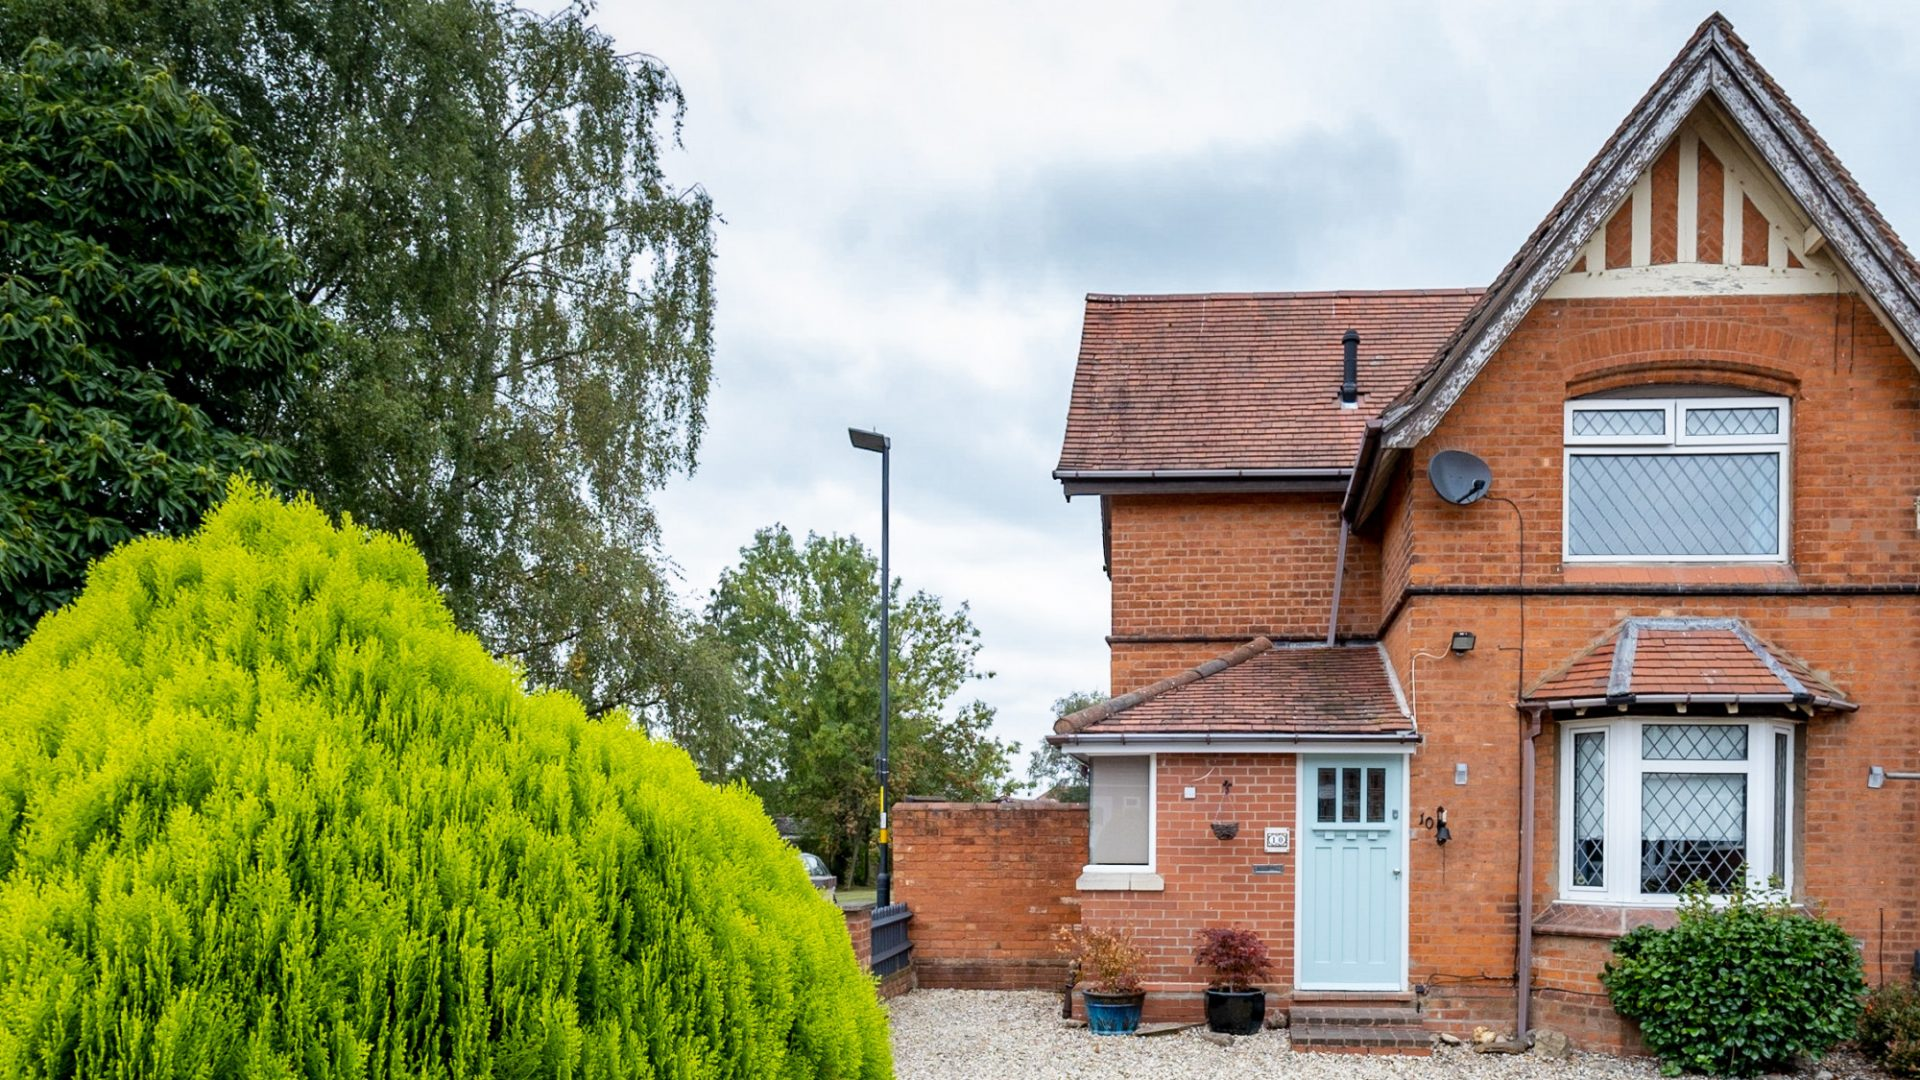 Hamlet Road, Birmingham for sale with Mr and Mrs Clarke estate agent